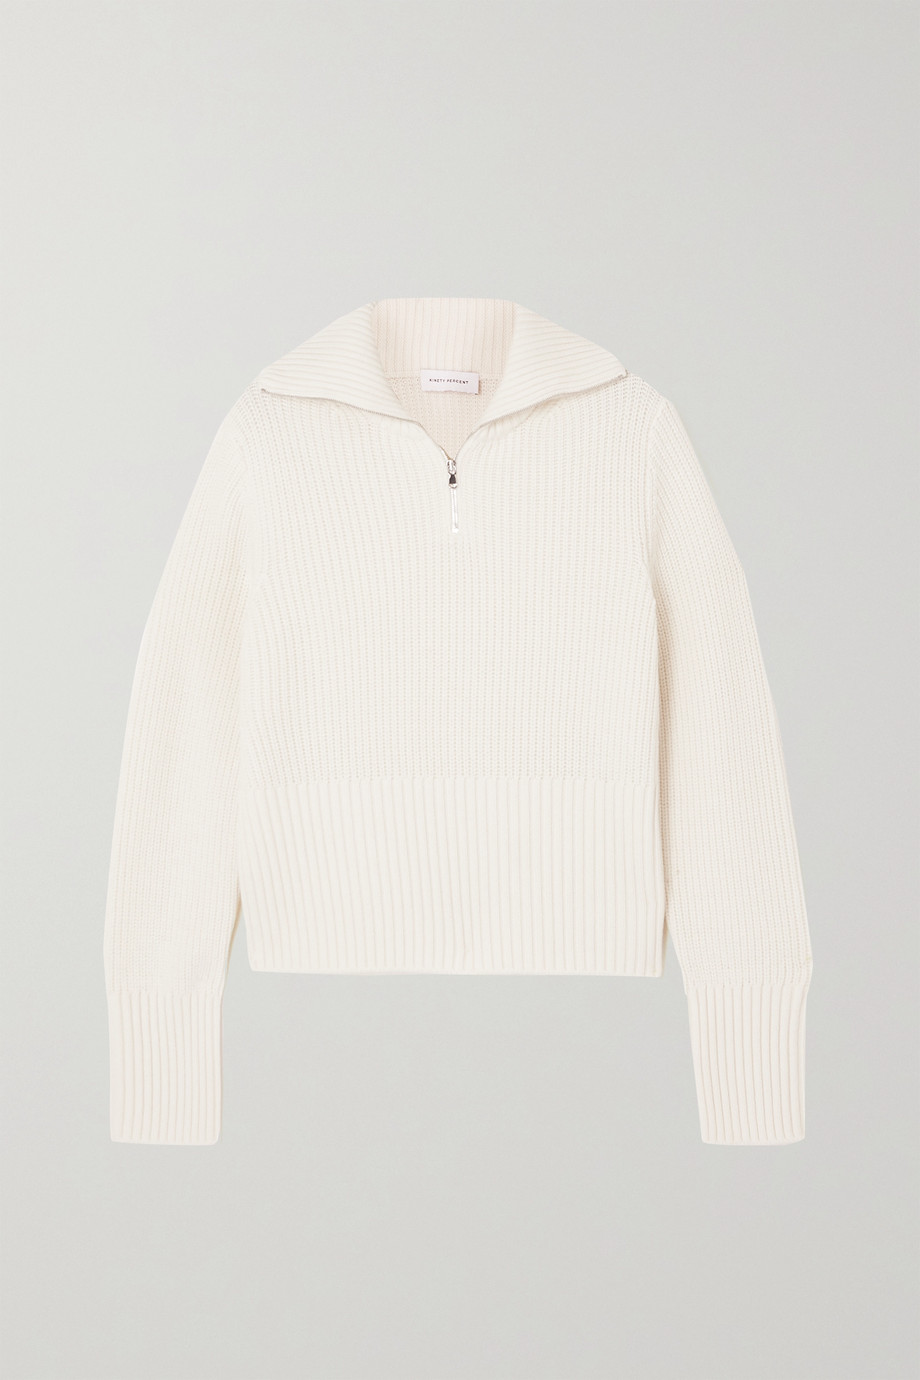 NINETY PERCENT + NET SUSTAIN ribbed organic merino wool sweater